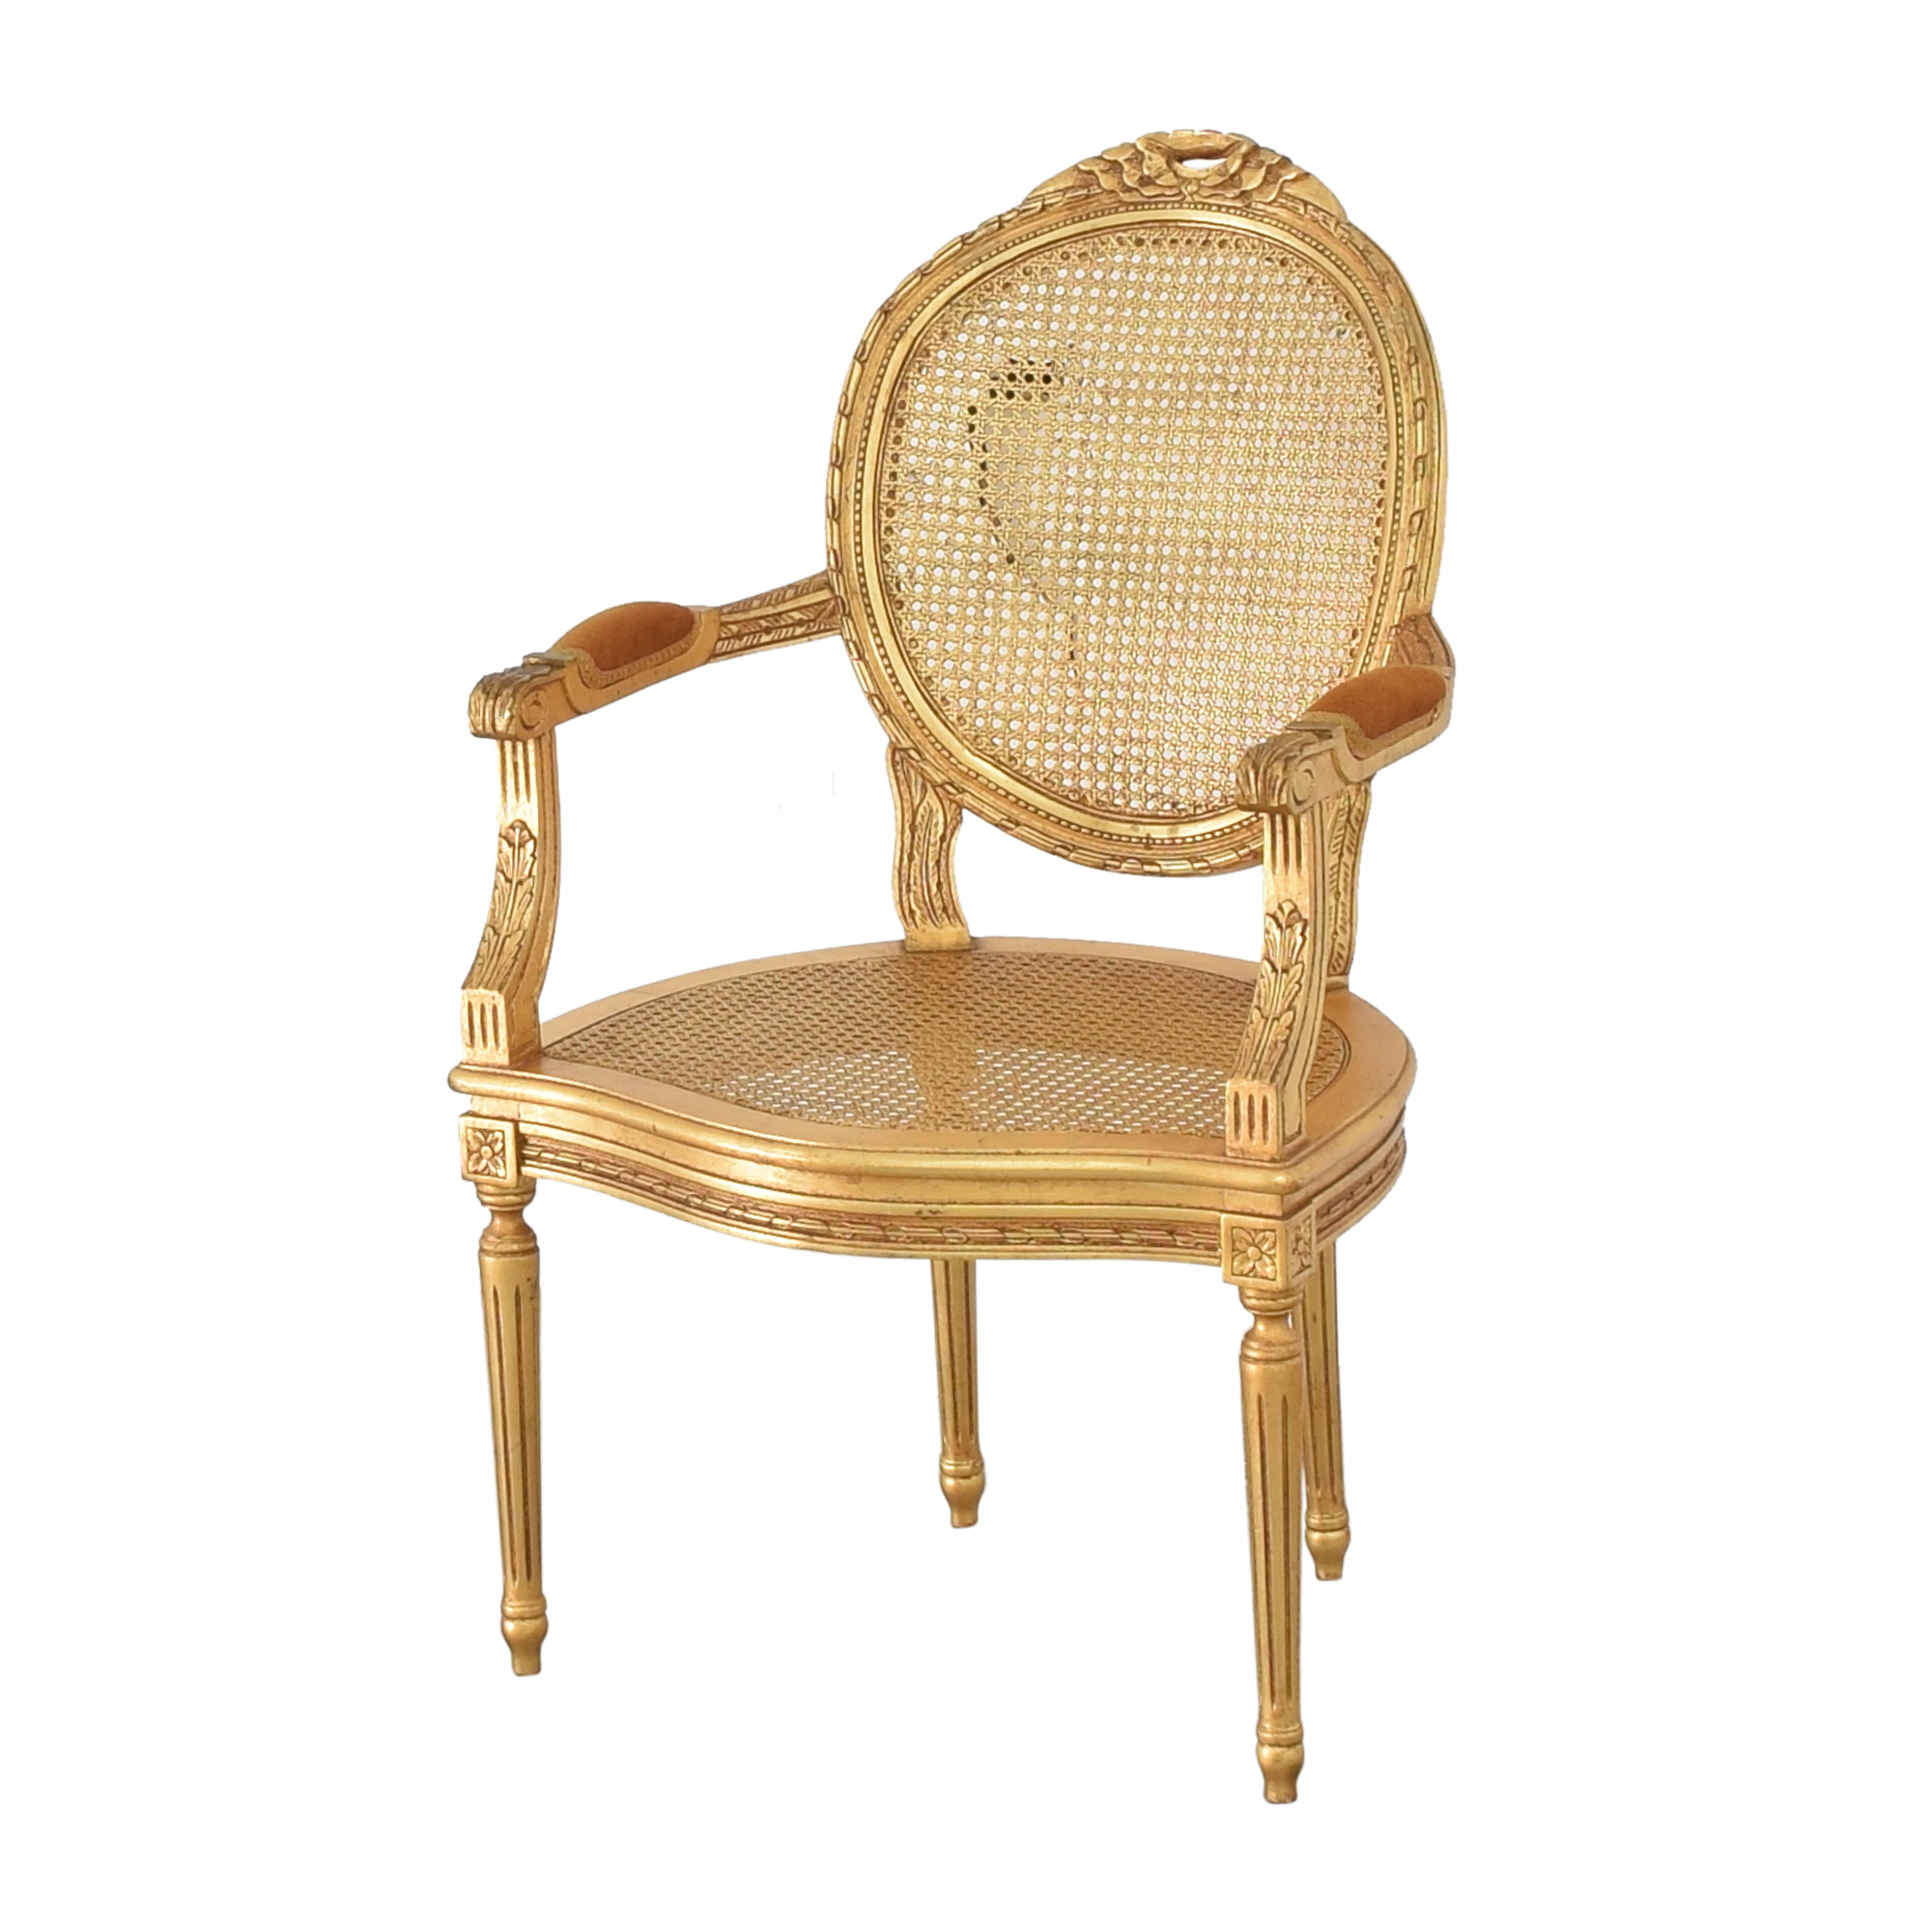 Decorative Crafts Decorative Crafts Louis XVI Fauteuil Armchair dimensions